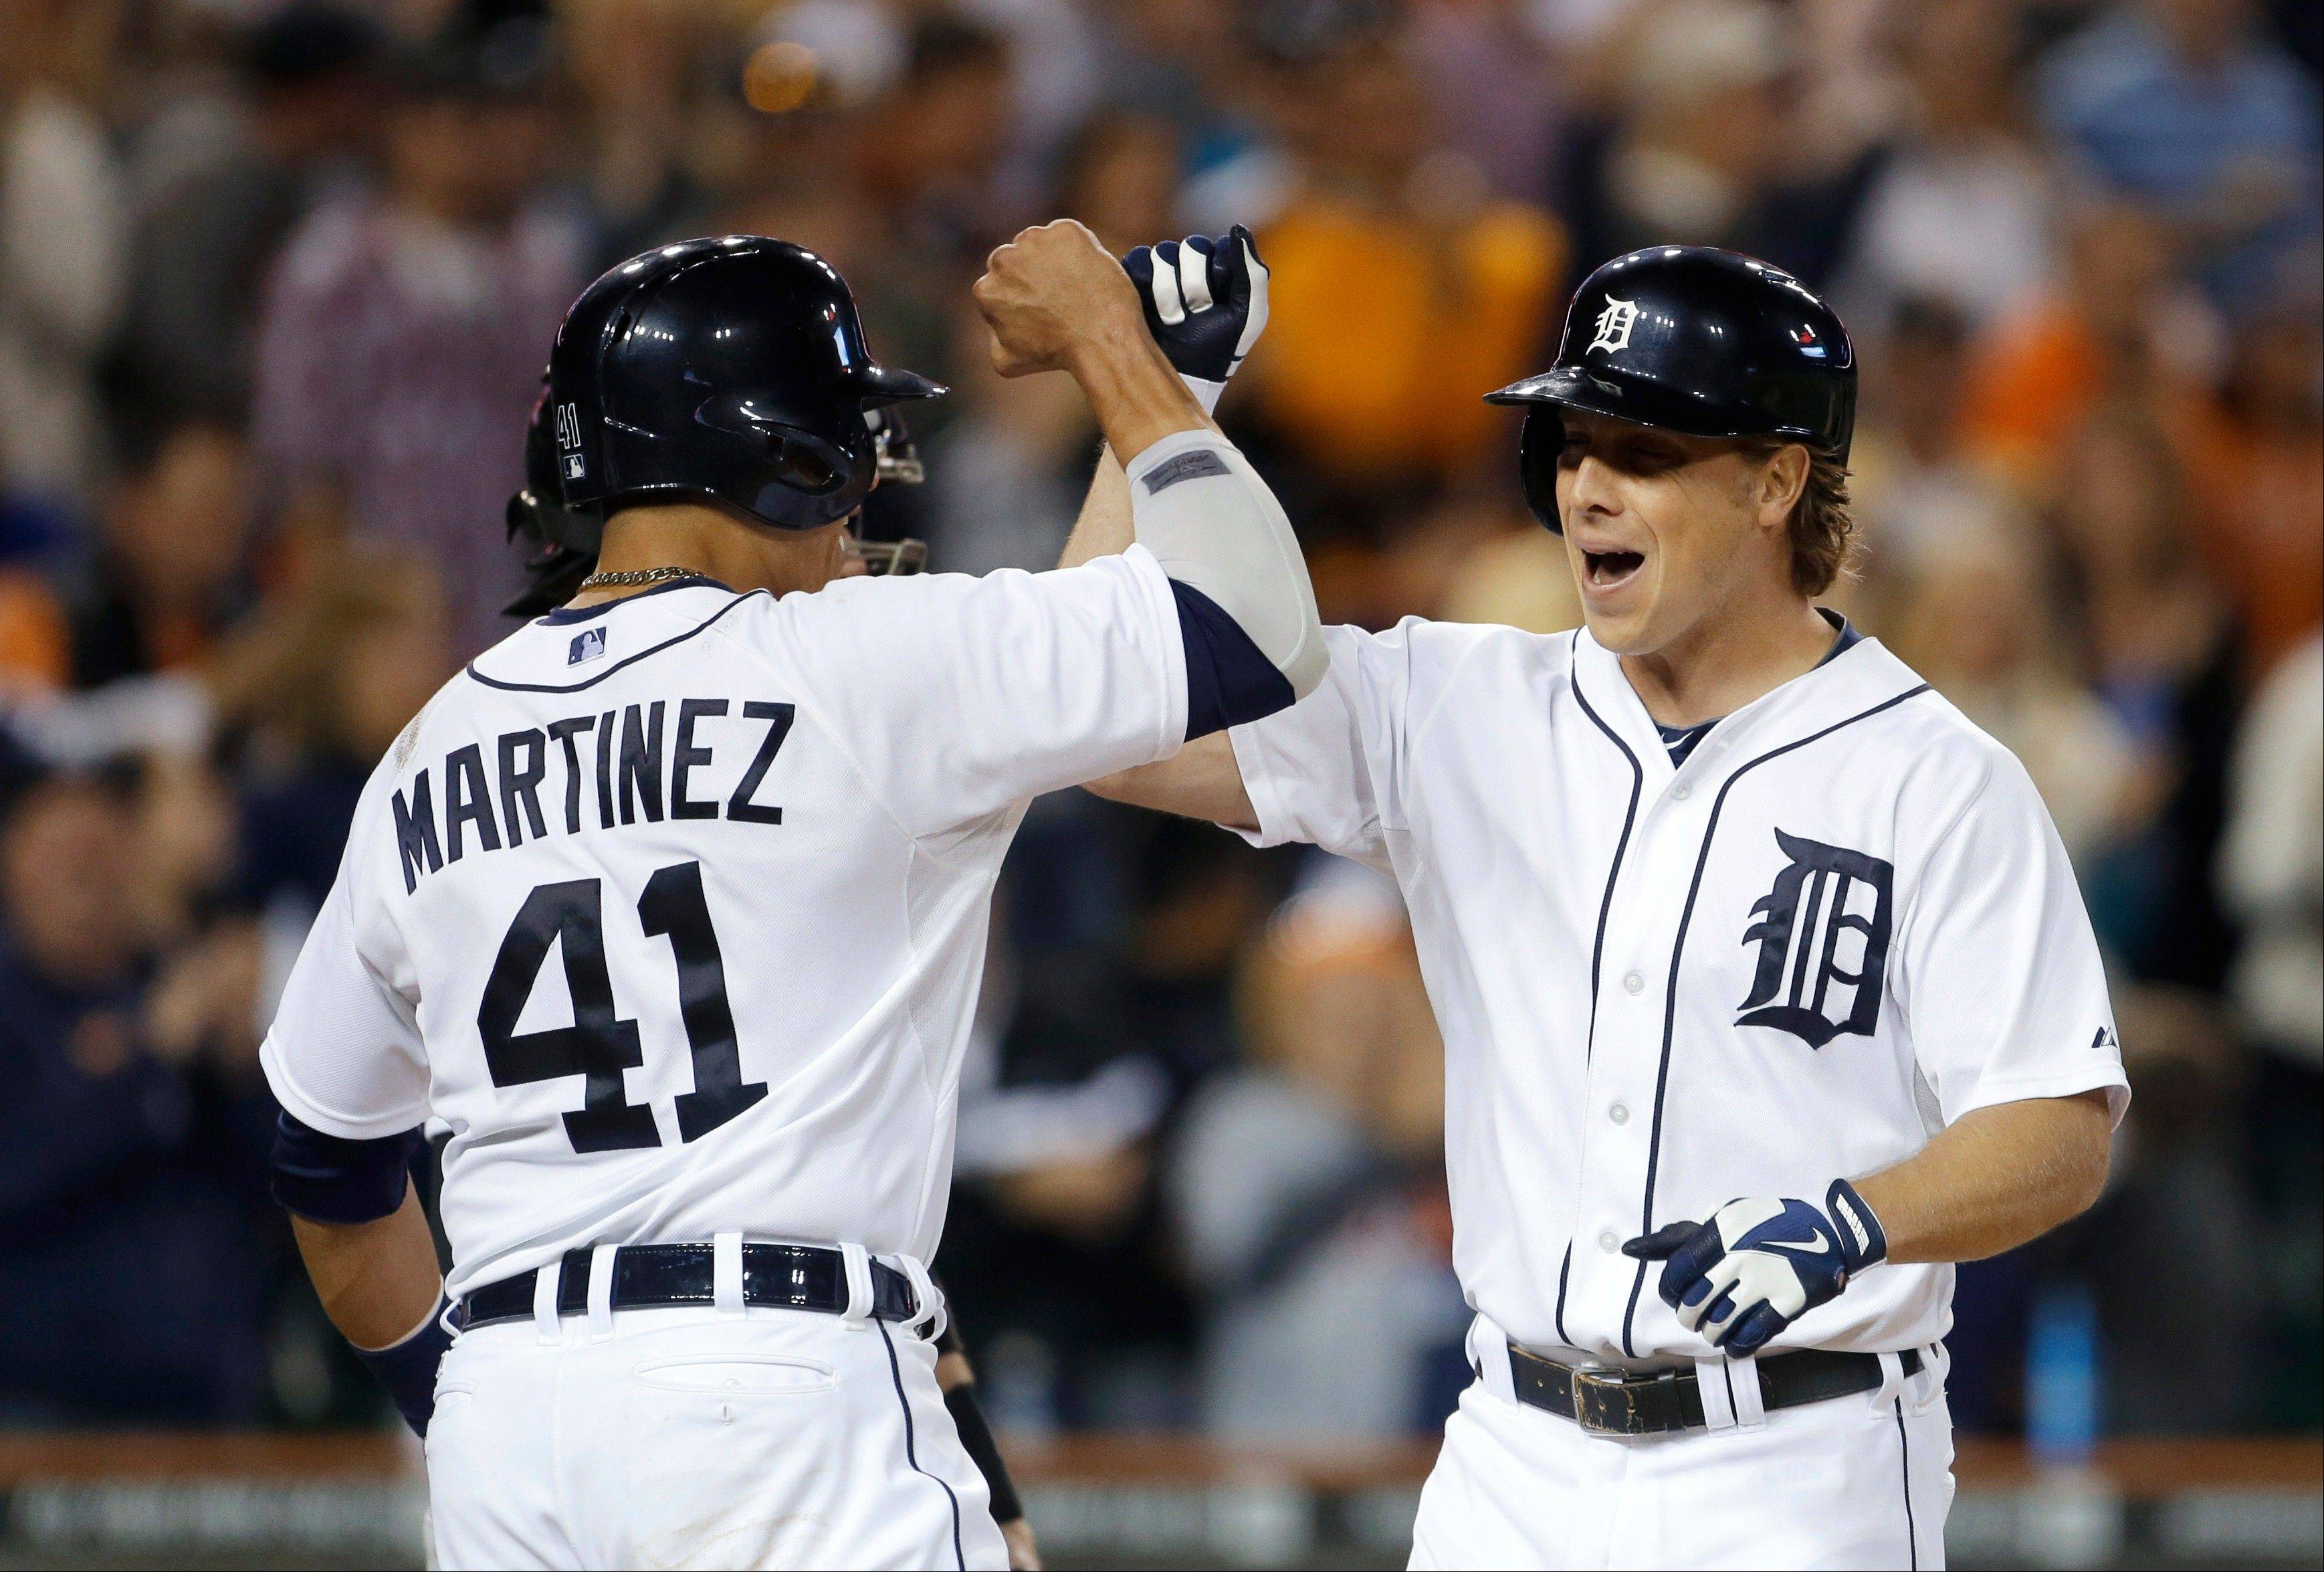 The Tigers� Andy Dirks, right, is congratulated for his three-run home run by Victor Martinez during the ninth inning Saturday night against the White Sox in Detroit.